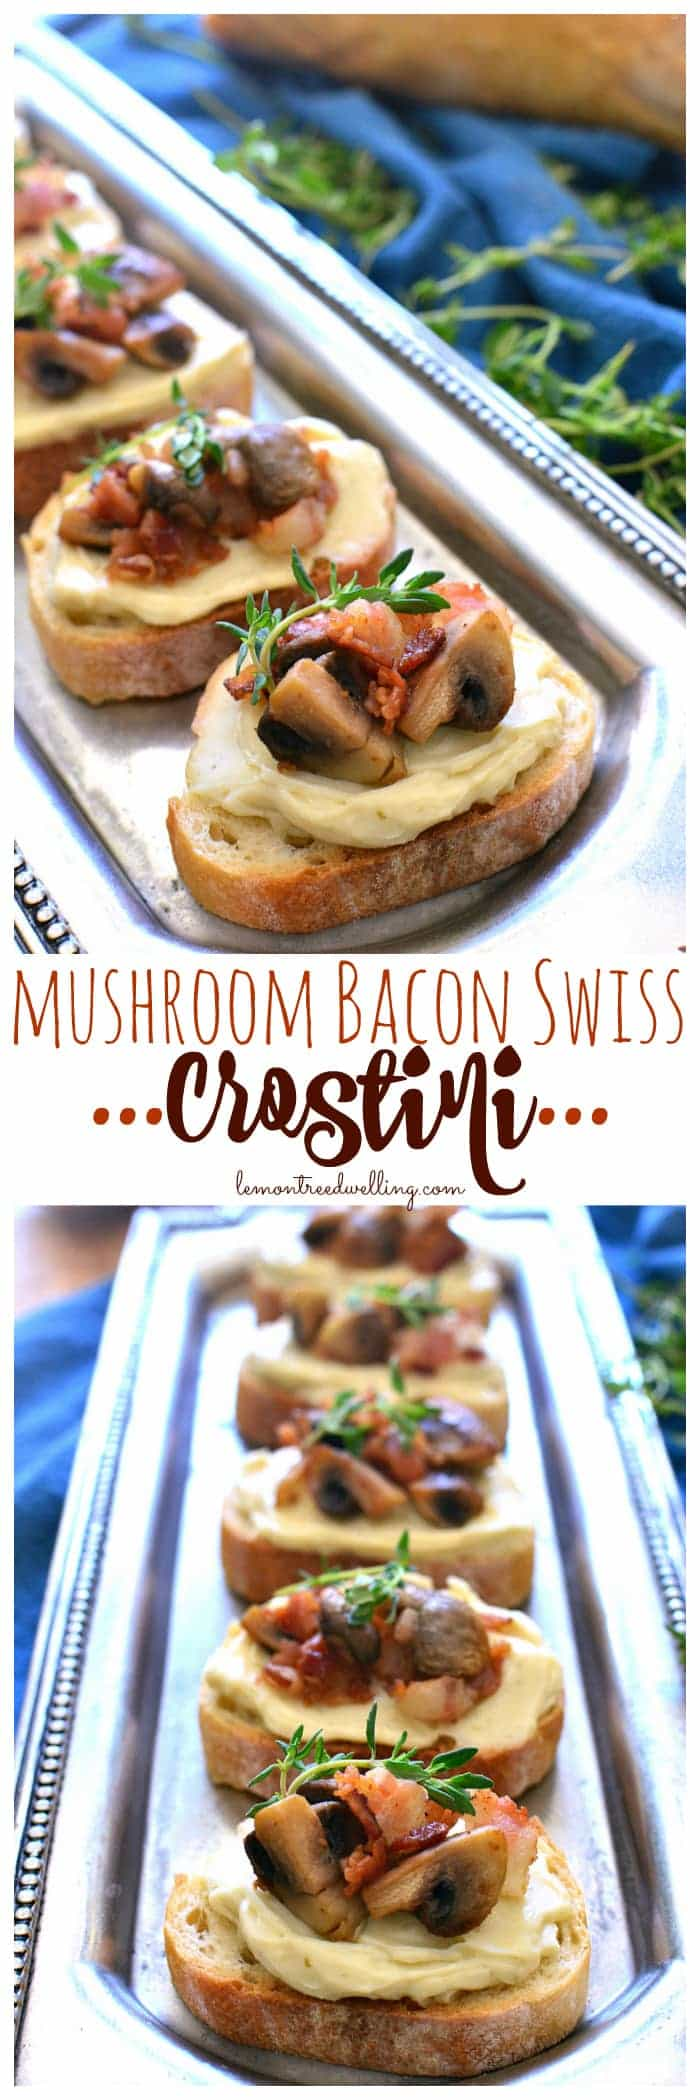 This Mushroom Bacon Swiss Crostini is packed with delicious flavor and so simple to make! The perfect holiday appetizer - it's sure to please a crowd!